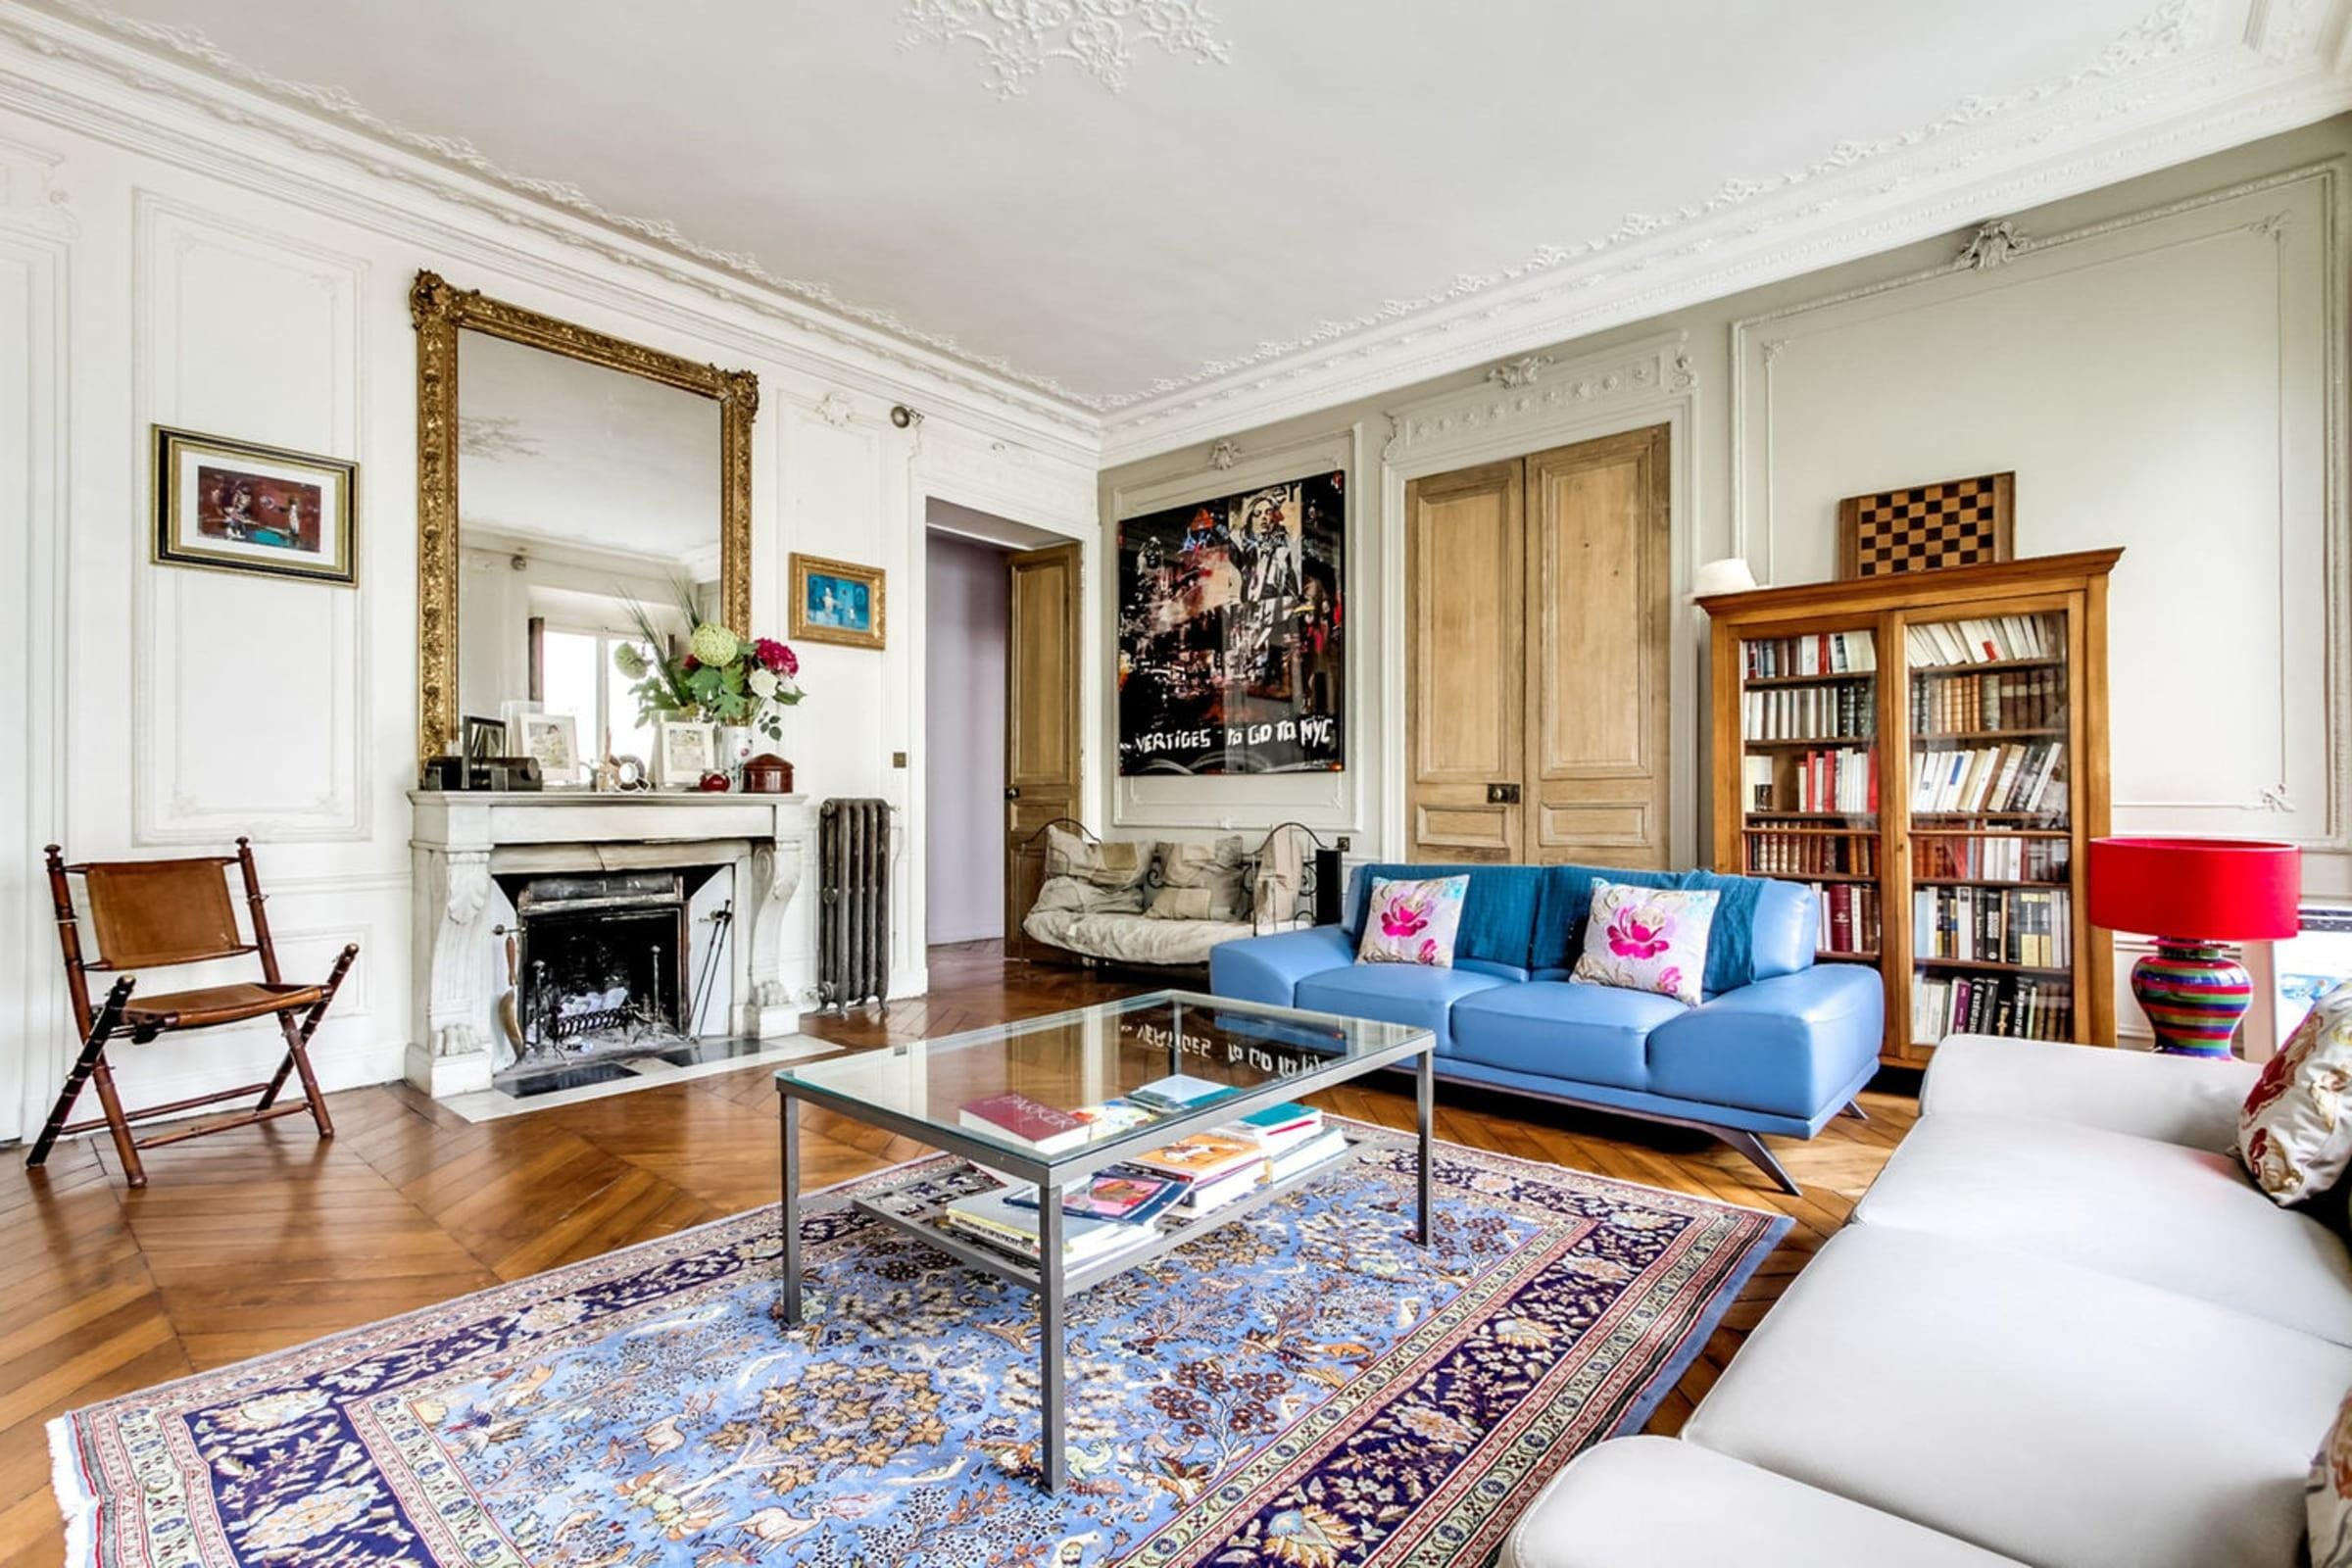 Property Image 2 - Magnificent apartment at the heart of Republique district